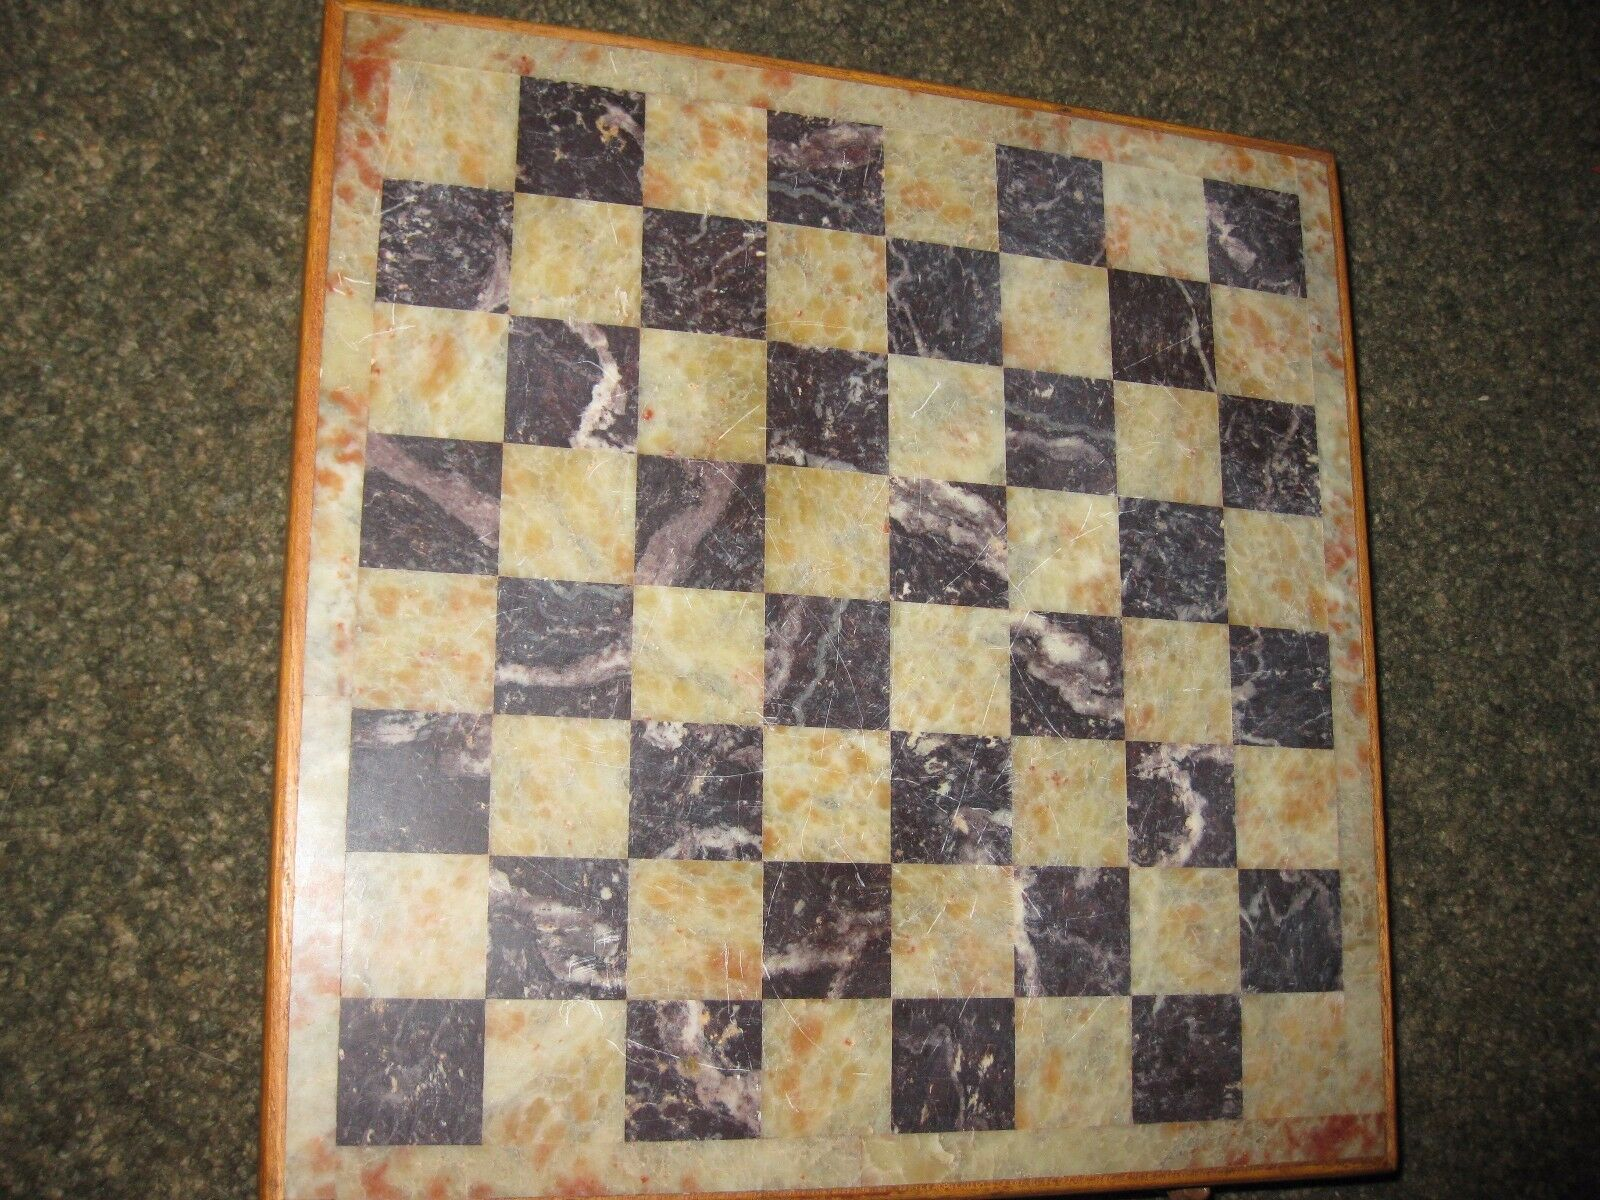 Vintage Chess Set Wood Box Marble Top verde and rosso Pieces Box 10  x 10  x 2